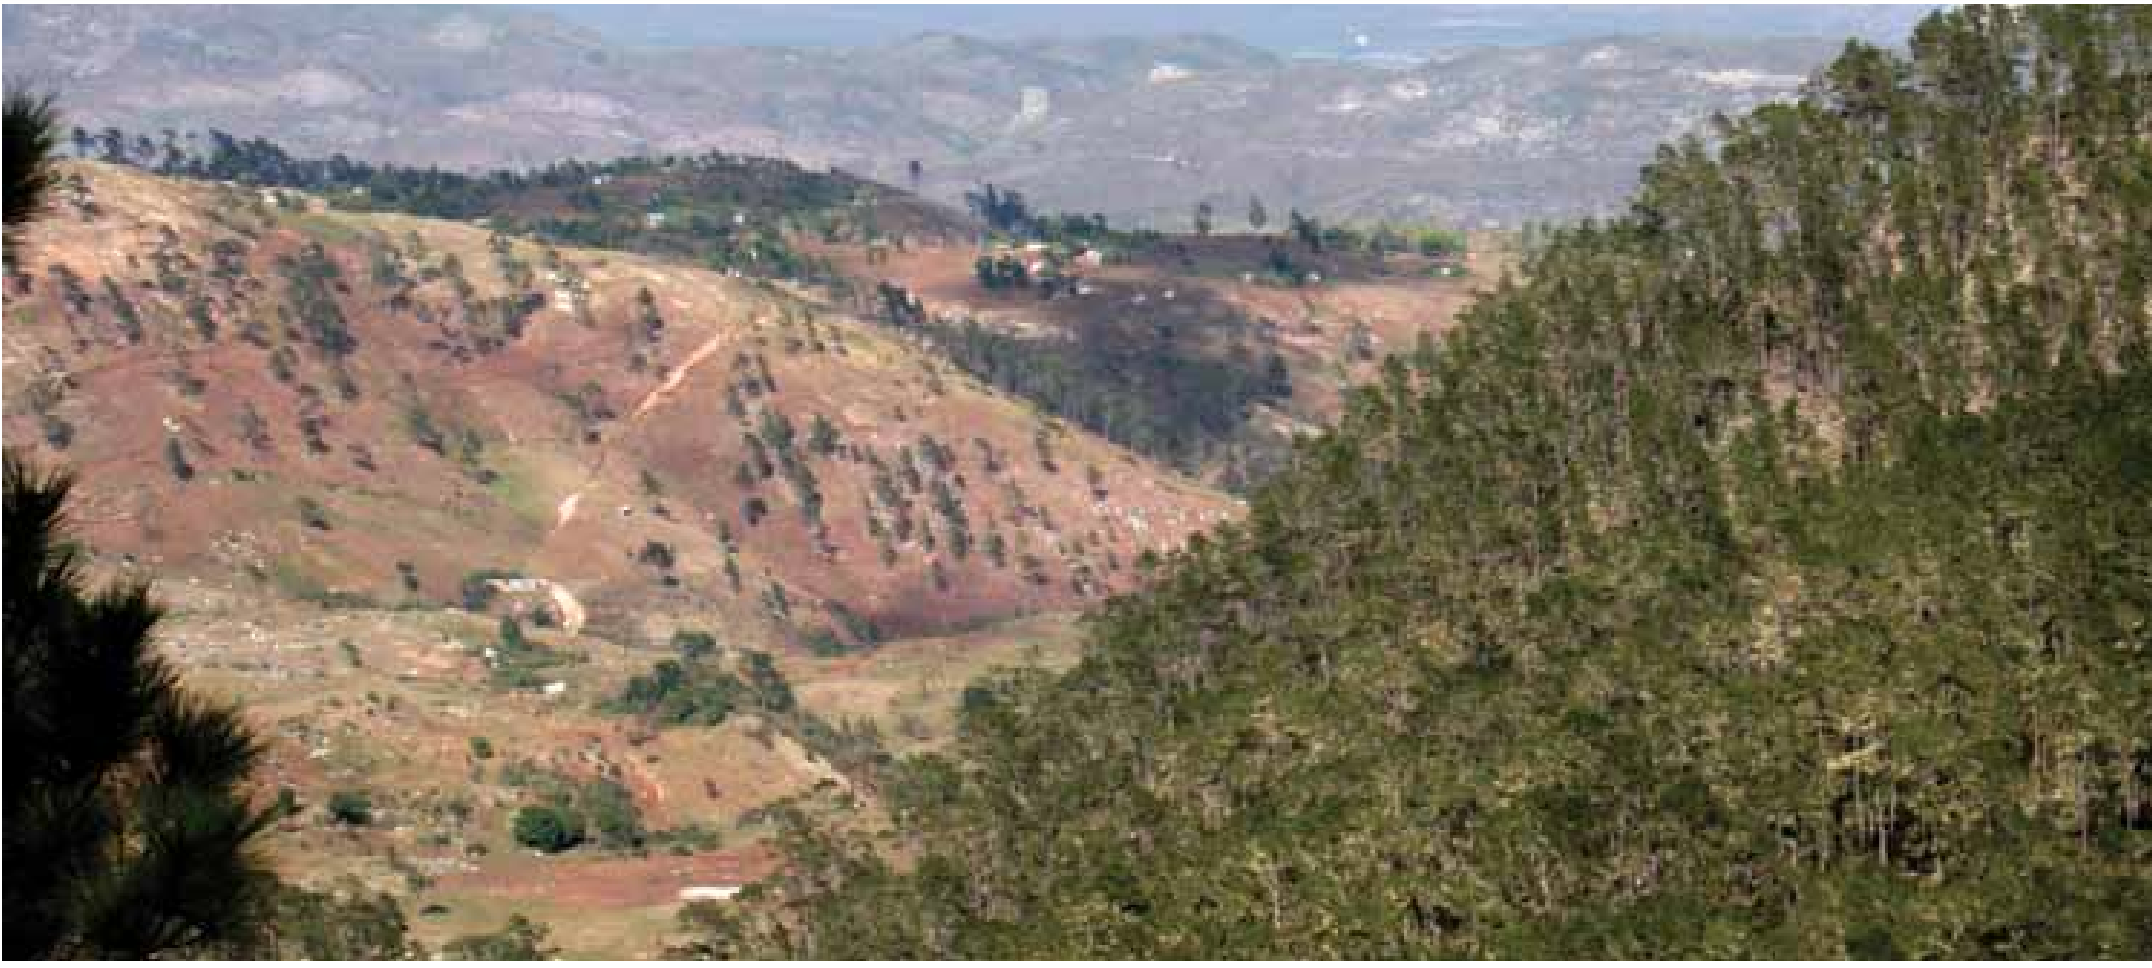 Deforestation in Haiti at border with Dominican Republic